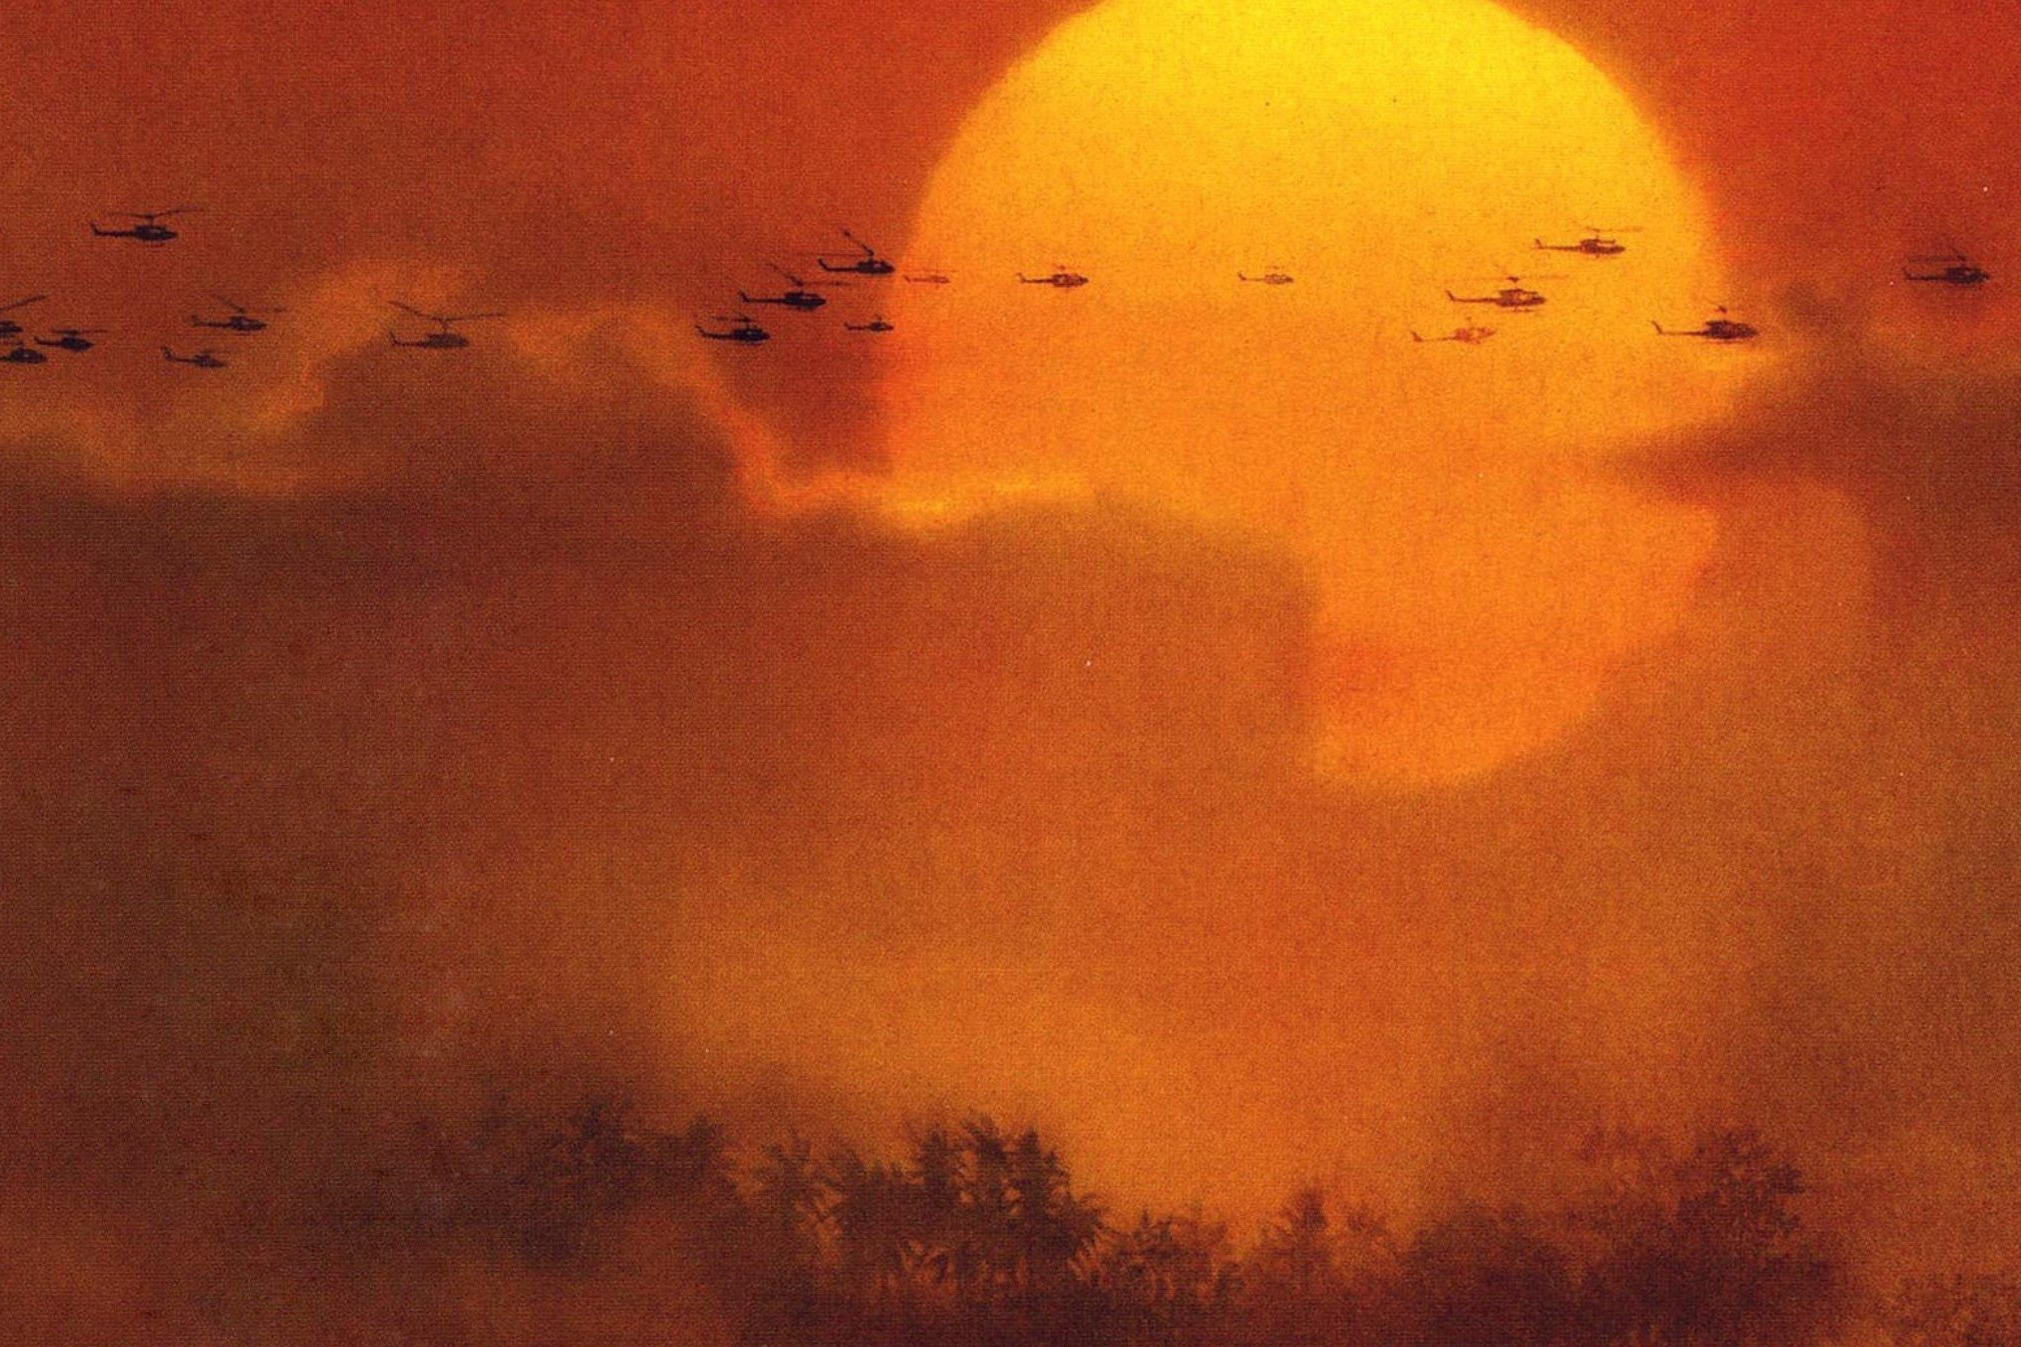 Apocalypse Now (1979) - Directed by: Francis Ford CoppolaWritten by: Francis Ford Coppola & John Milius